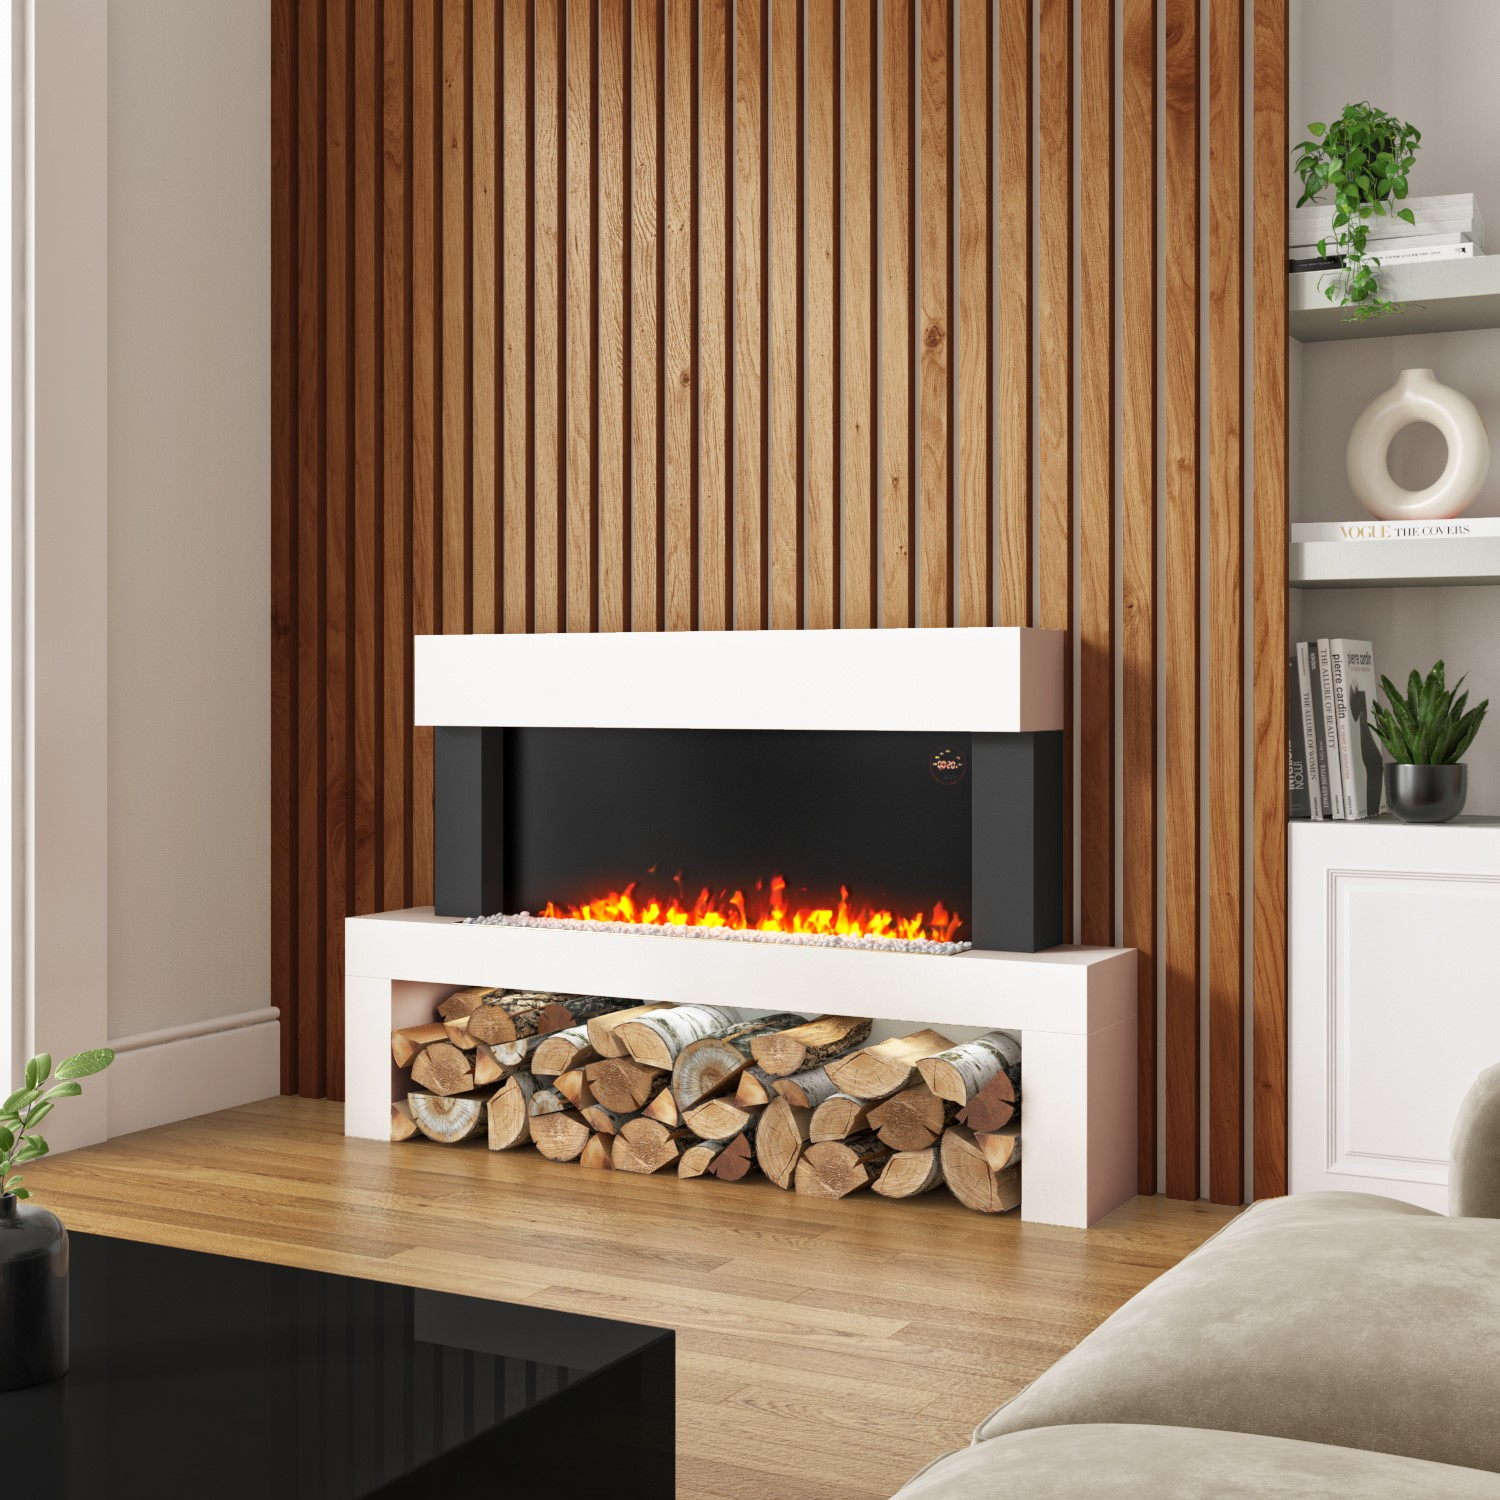 Amberglo Floor Standing Electric Fireplace Suite In White Log Crystal Fuel Bed Furniture123